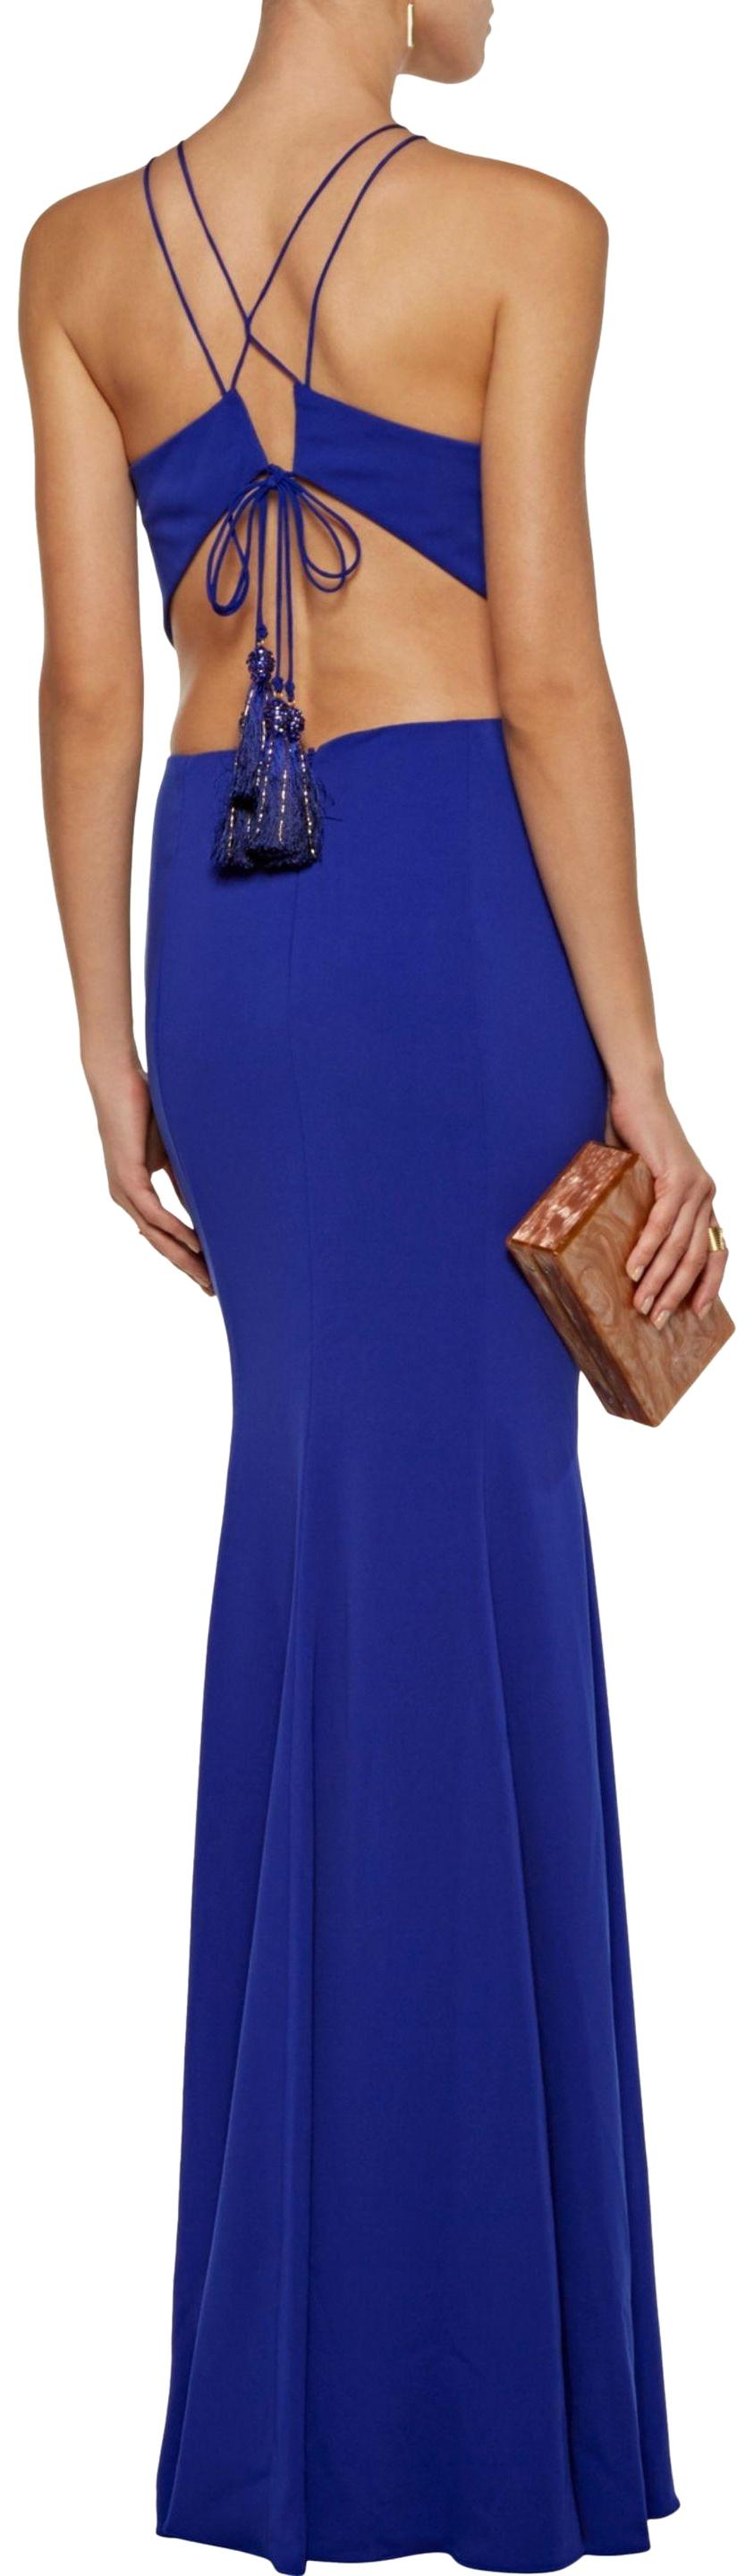 Marchesa Notte Woman Tasseled Embellished Stretch-cady Gown Royal Blue Size 8 Marchesa fKkzhR5